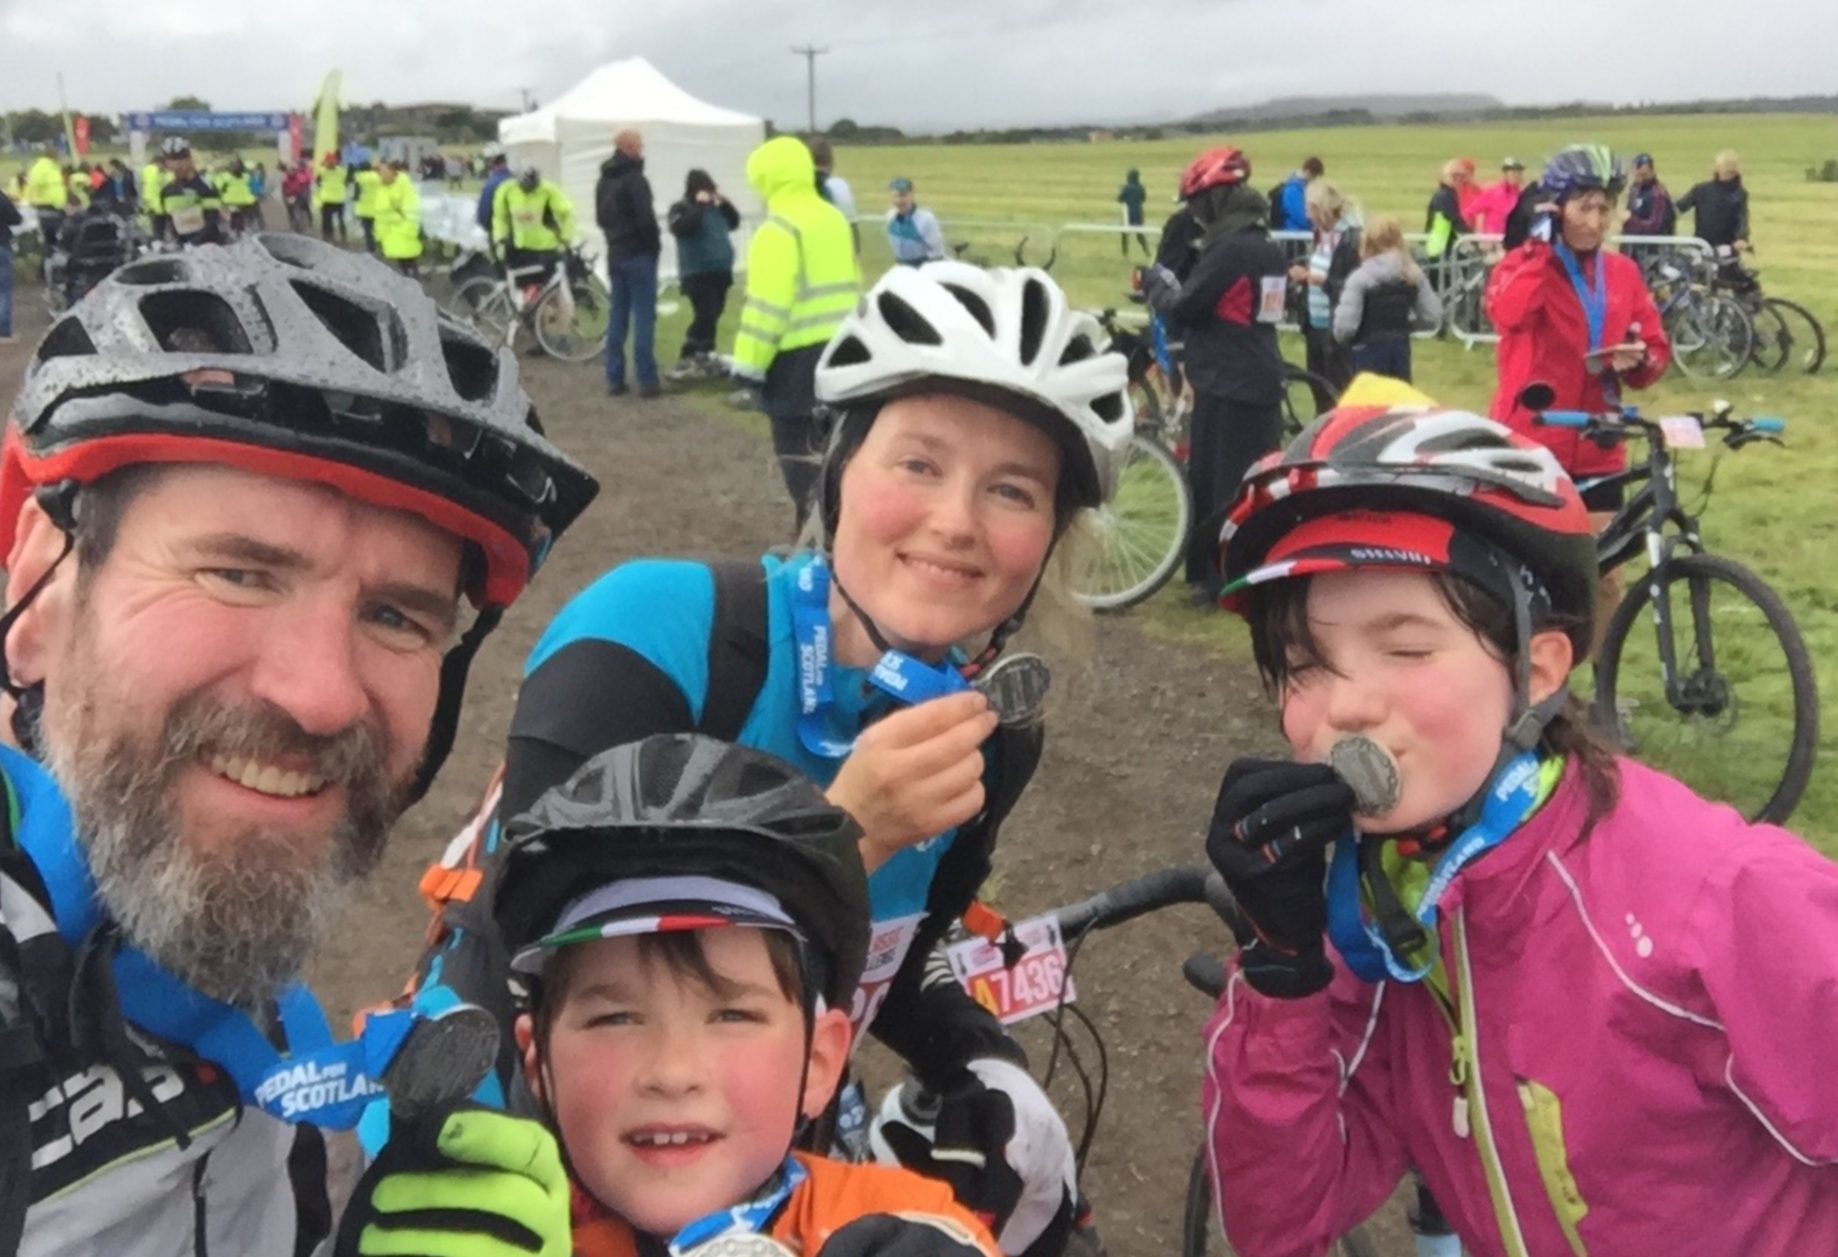 The Tares family take on the cycling challenge.